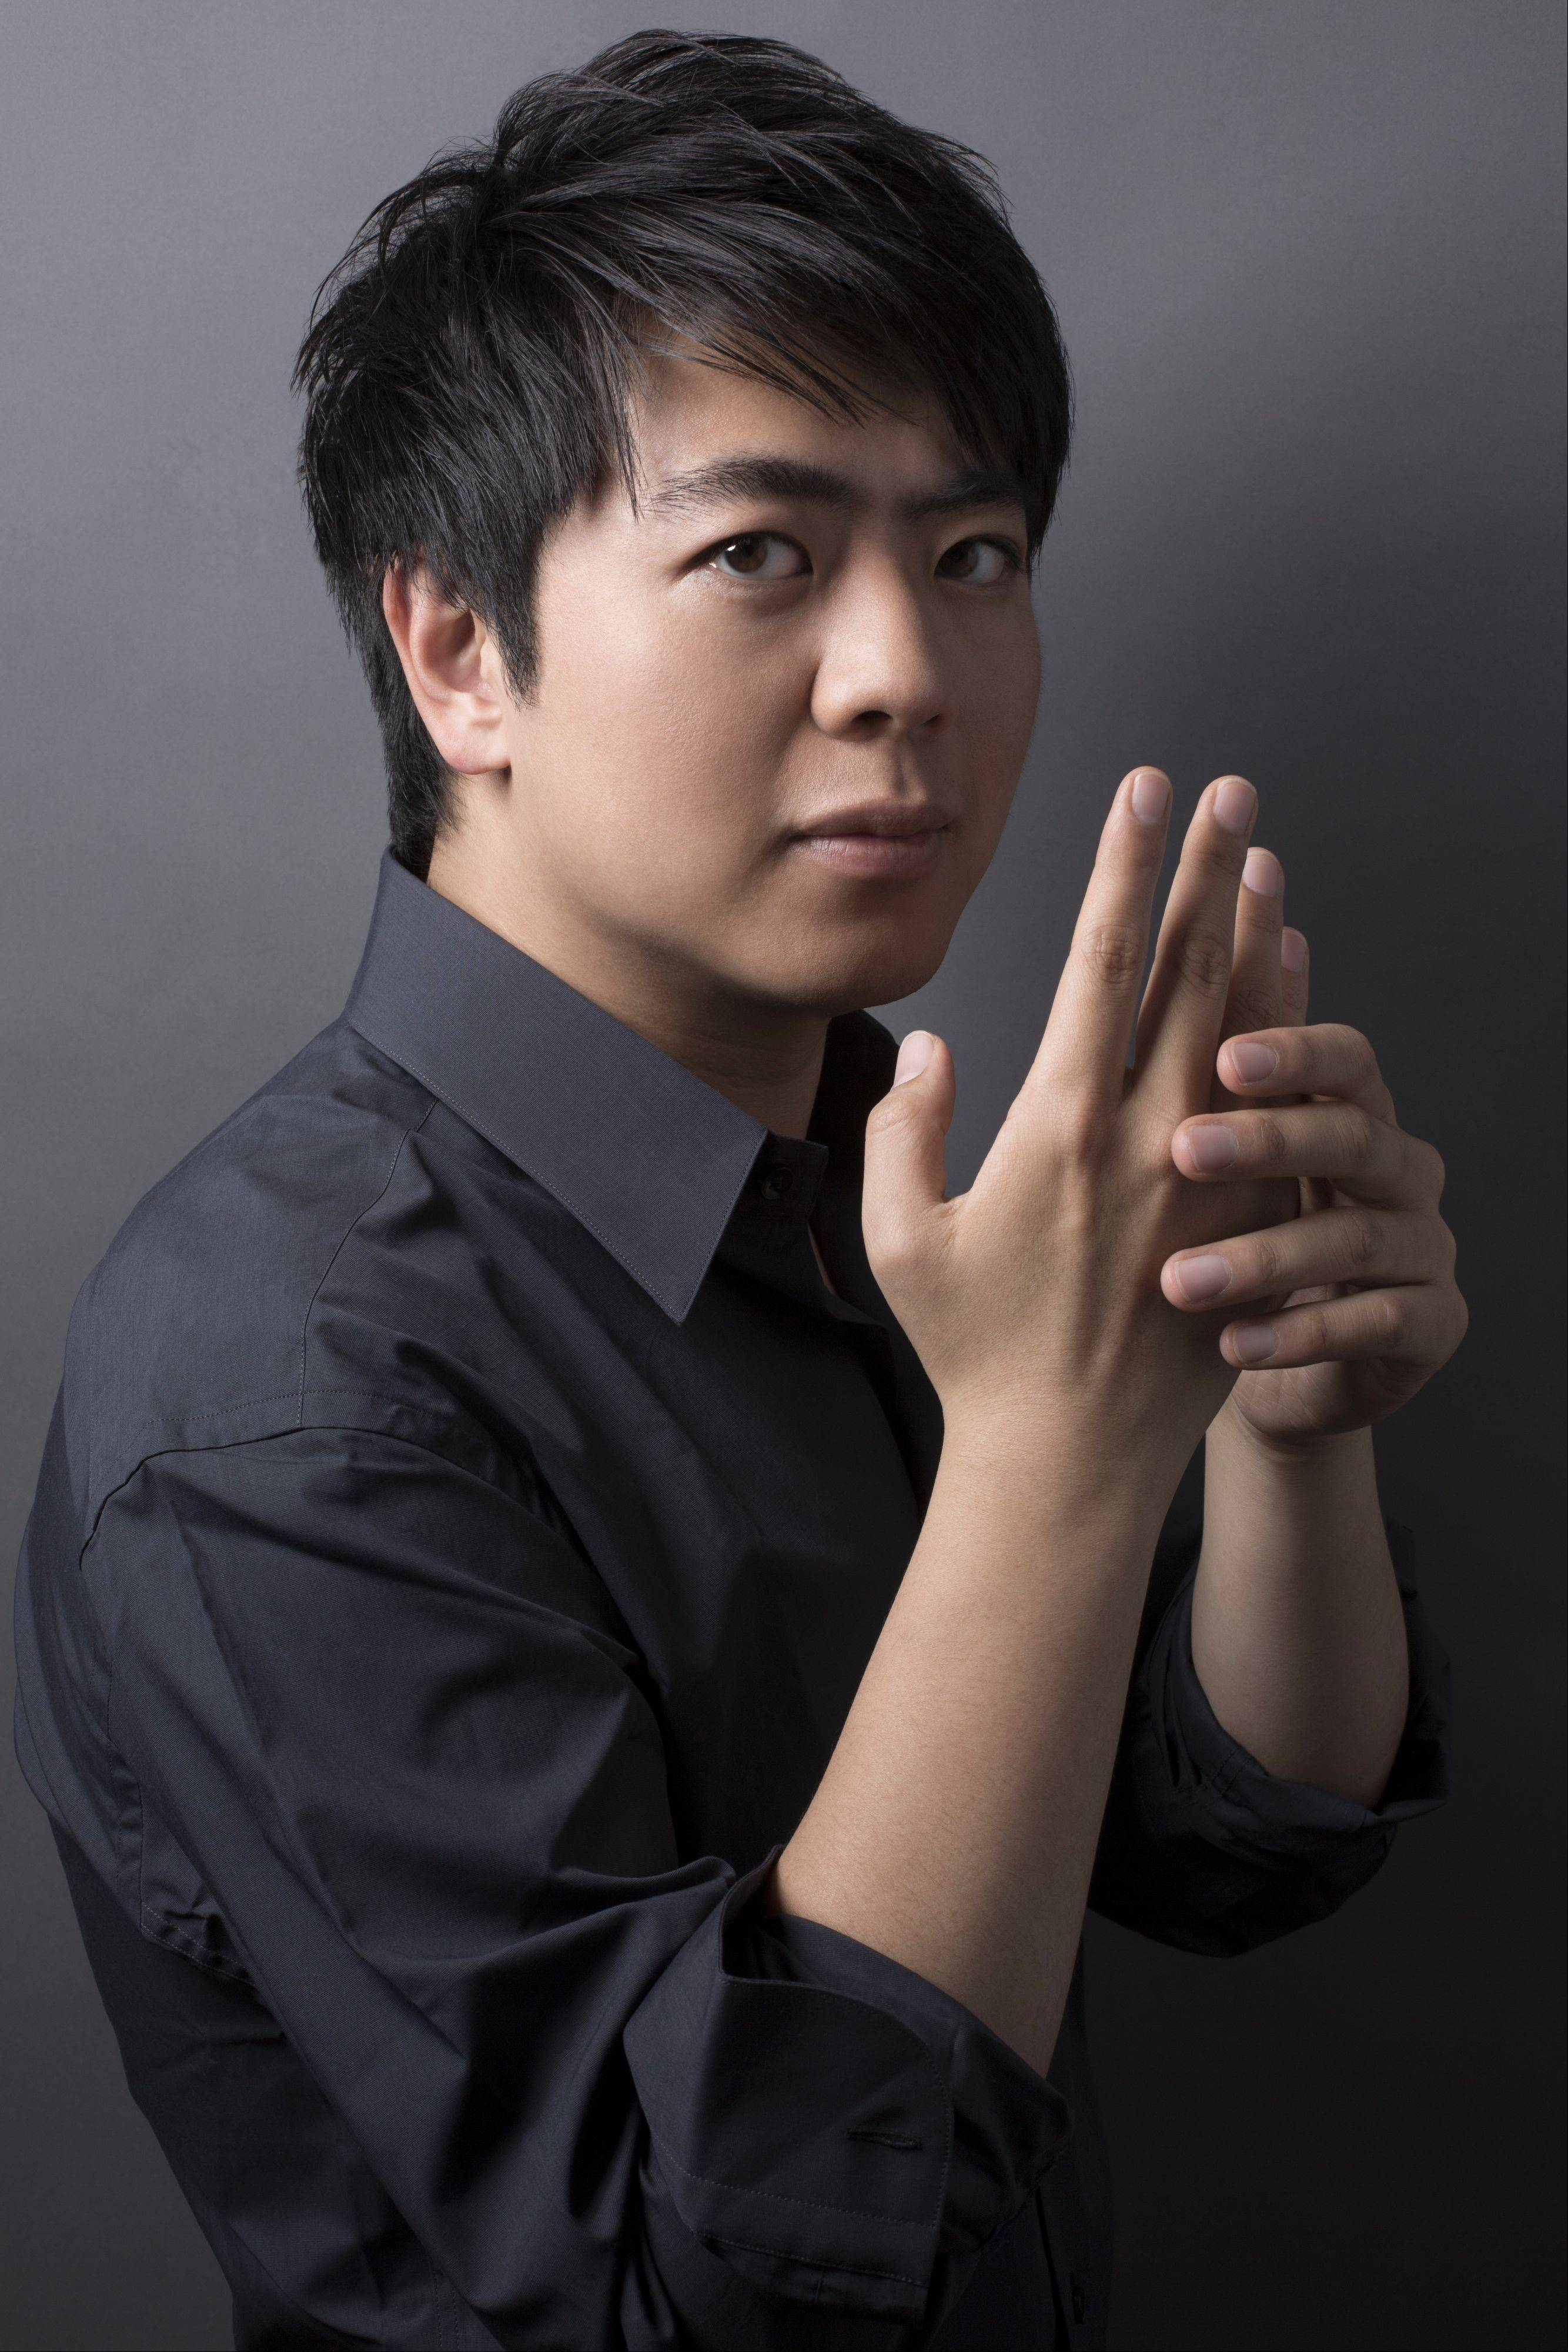 Chinese pianist Lang Lang returns to the Ravinia Festival in Highland Park to perform with the Chicago Symphony Orchestra for a gala concert commemorating the bicentennials of the births of Wagner, Verdi and the centennial of Britten.